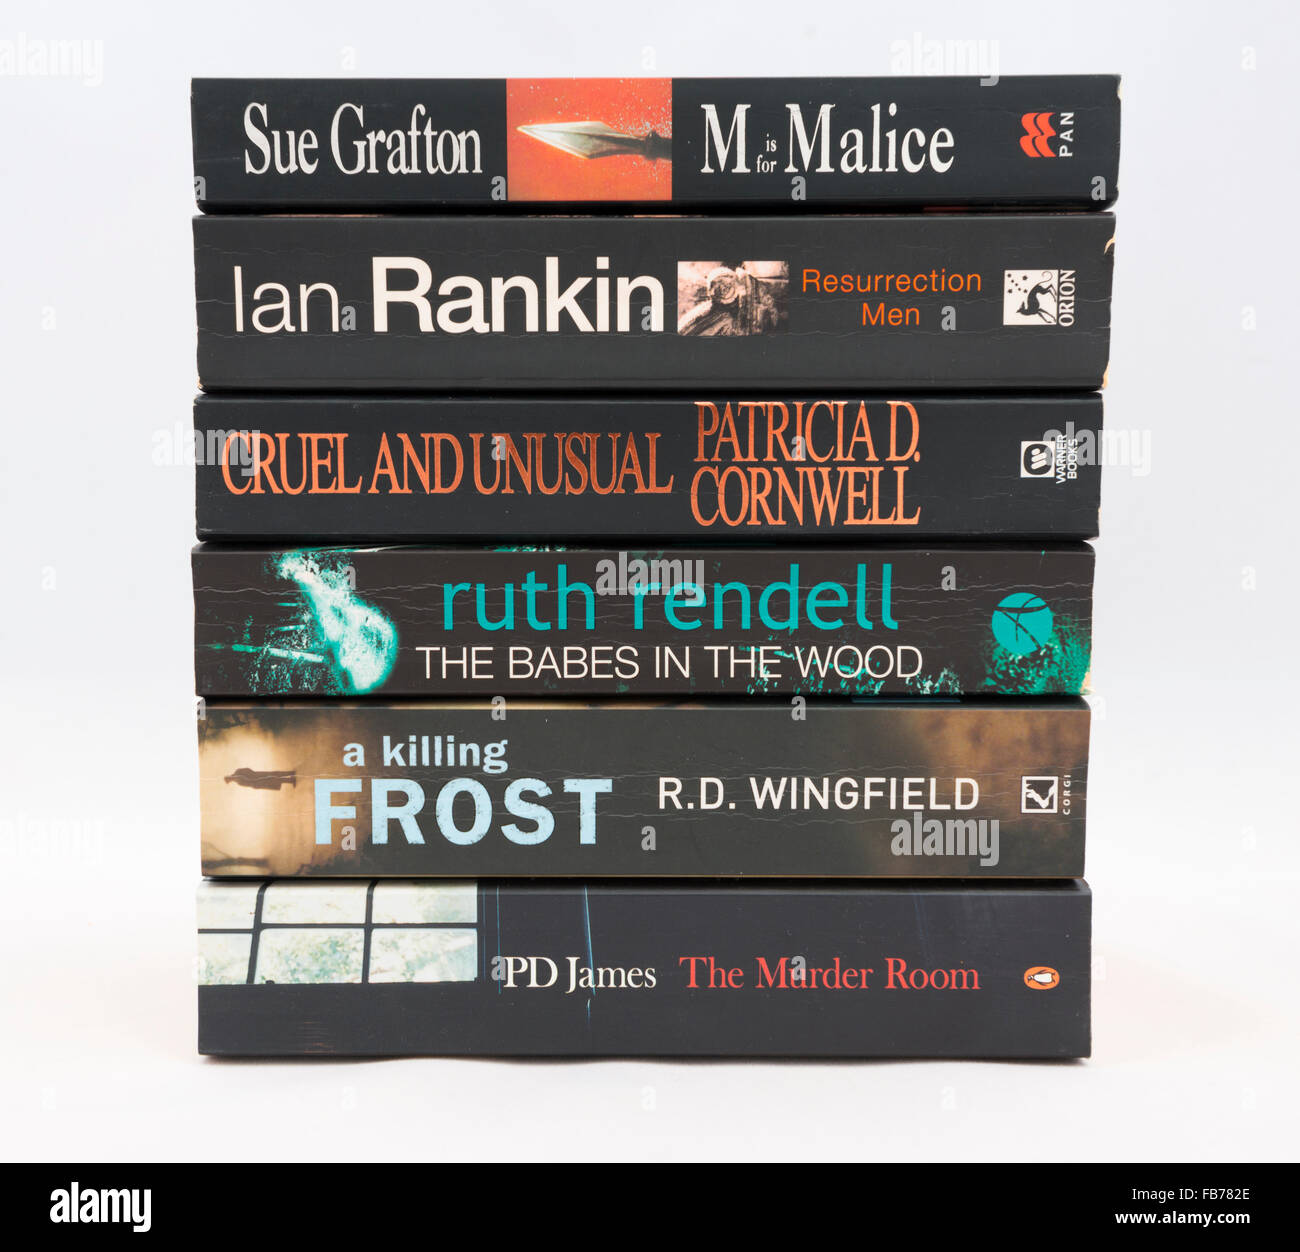 Crime novels by bestselling authors - Ian Rankin, Sue Grafton, PD James, R.D. Wingfield, Ruth Rendell, Patricia - Stock Image